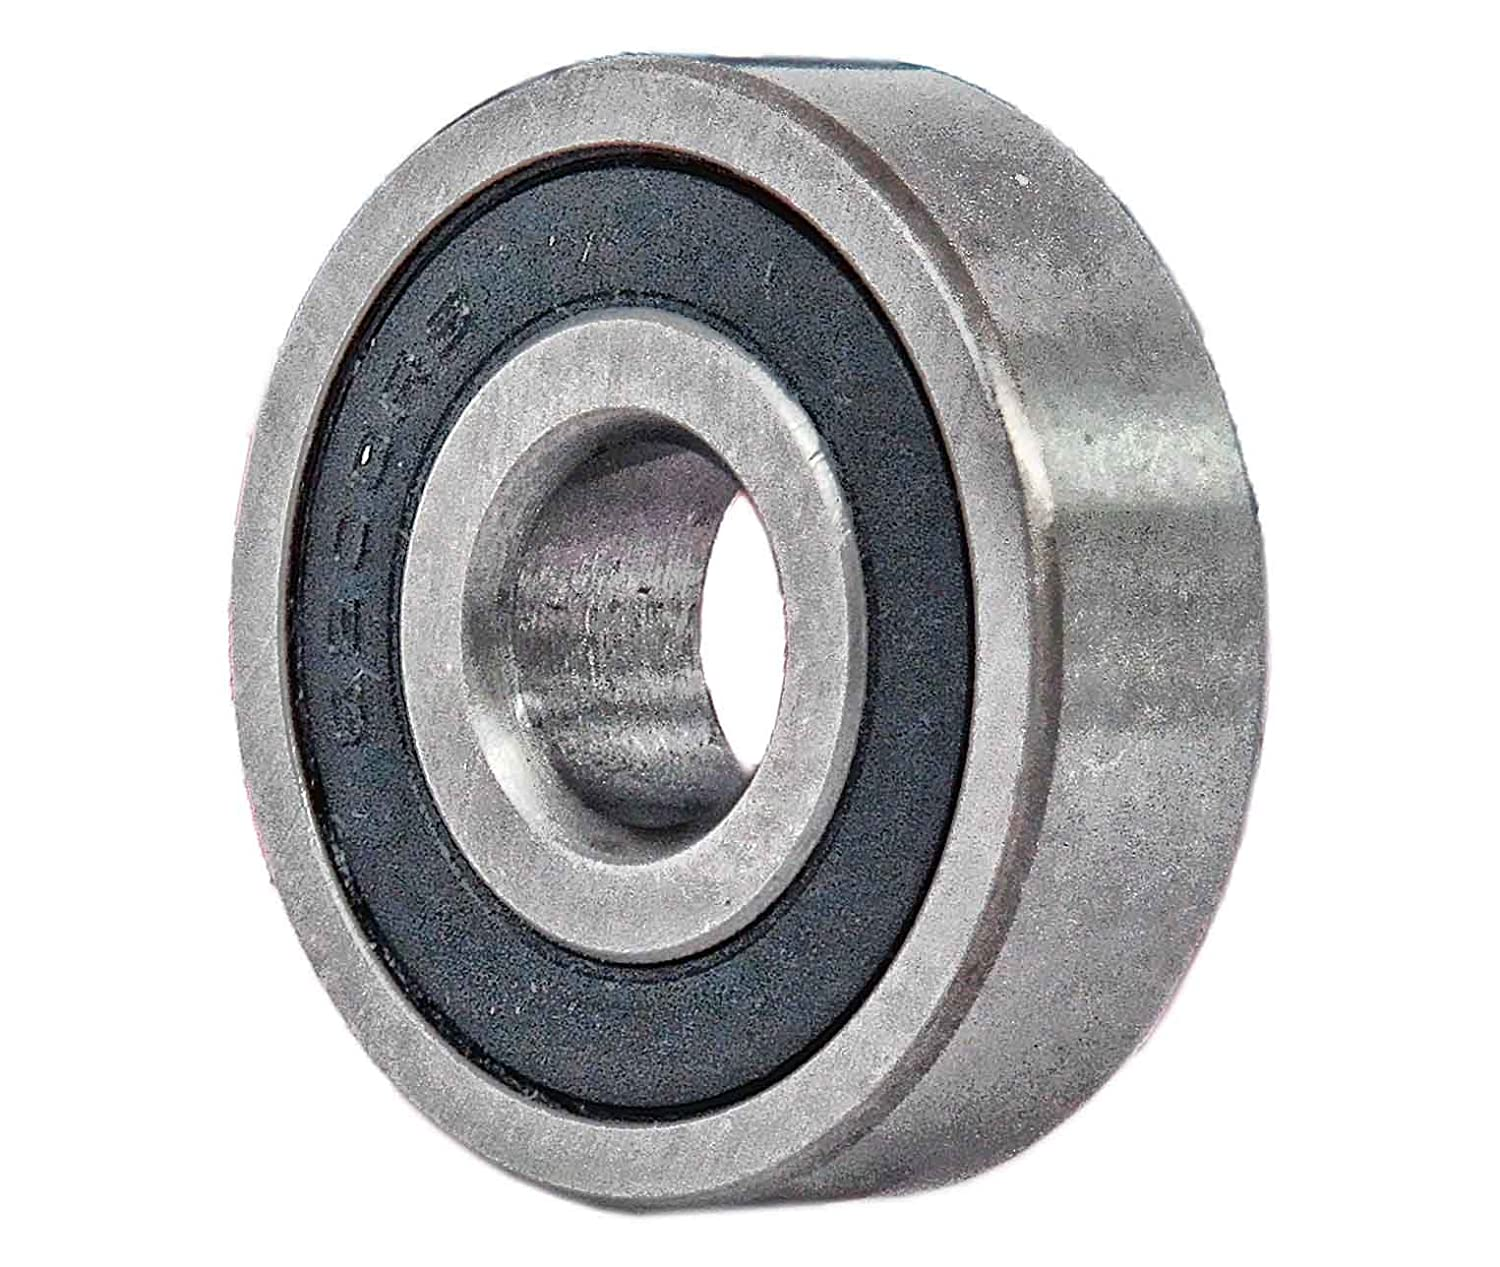 6200-2RSH C3 SKF Single Row Deep Groove Ball Bearing 10x30x9 mm